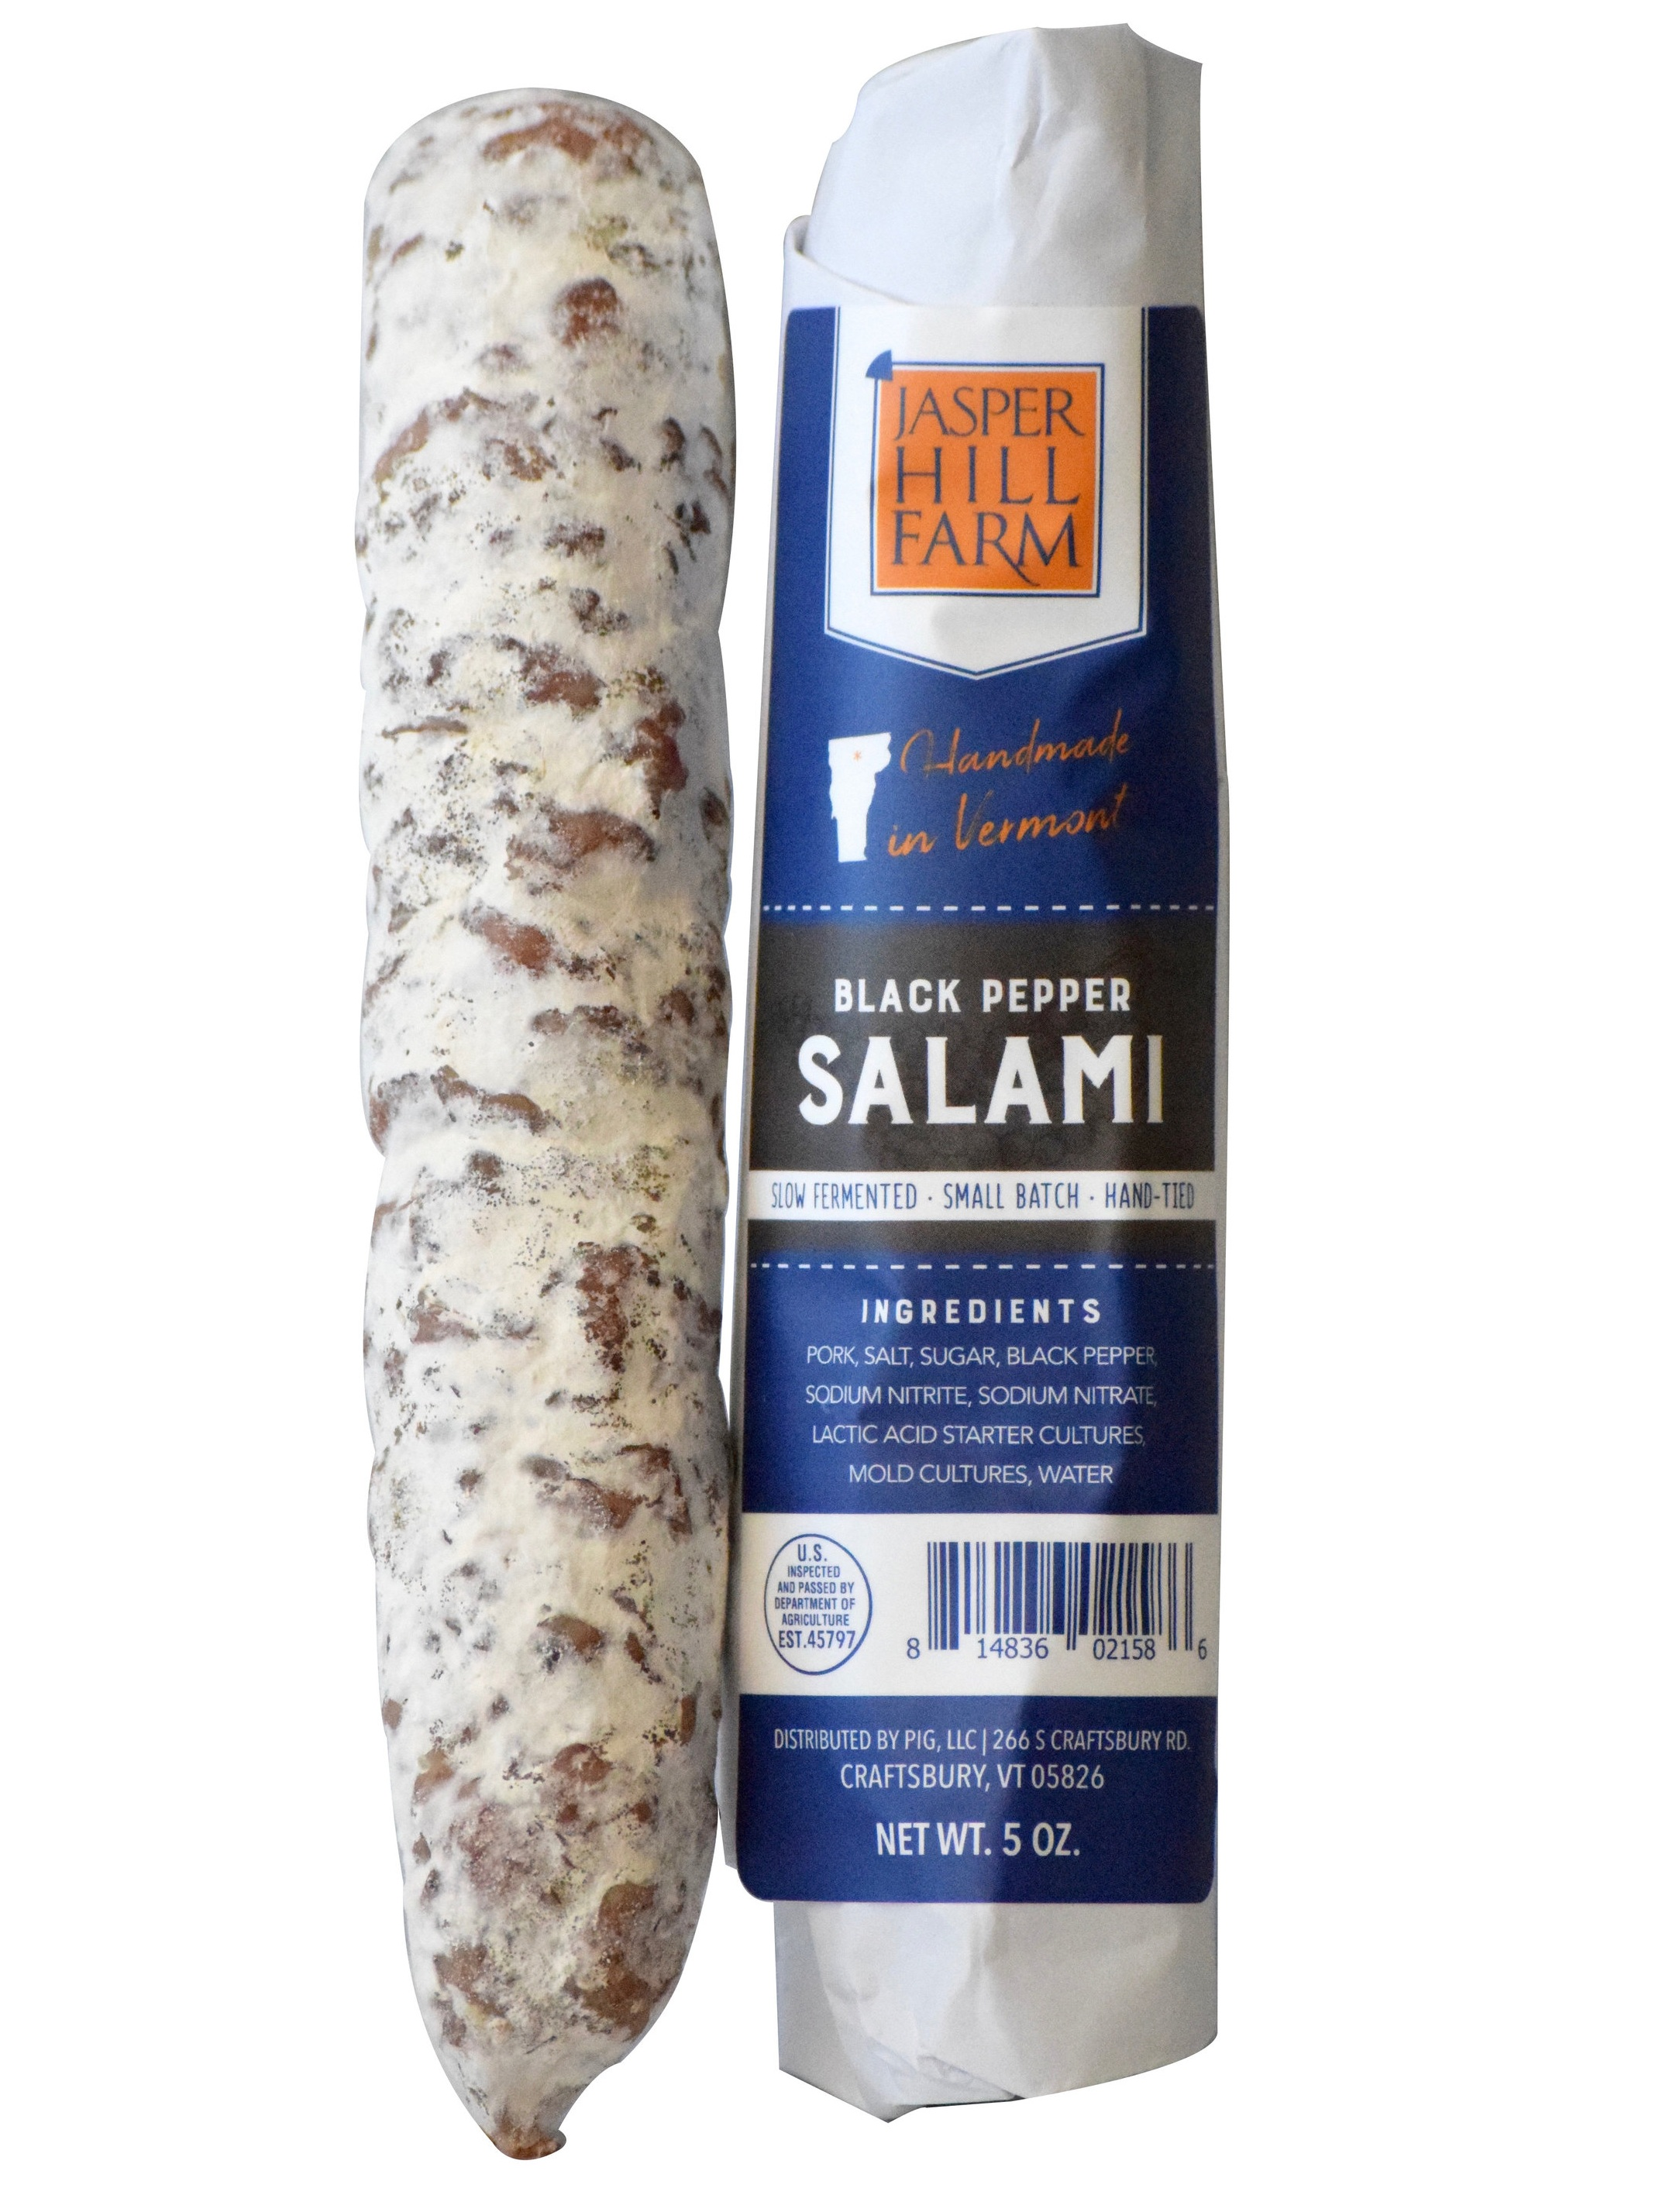 Black Pepper Salami - 4.5oz